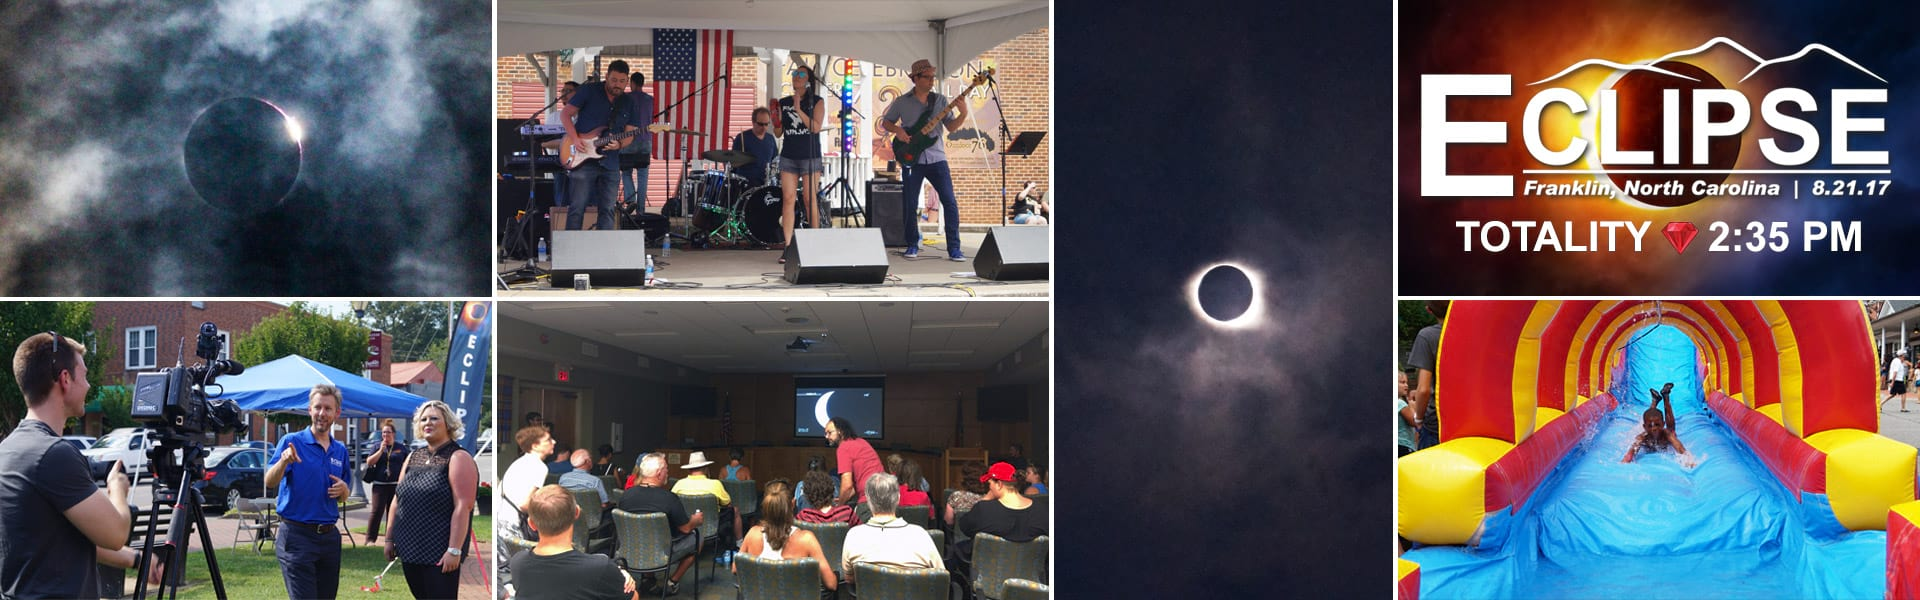 franklin nc solar eclipse festival events